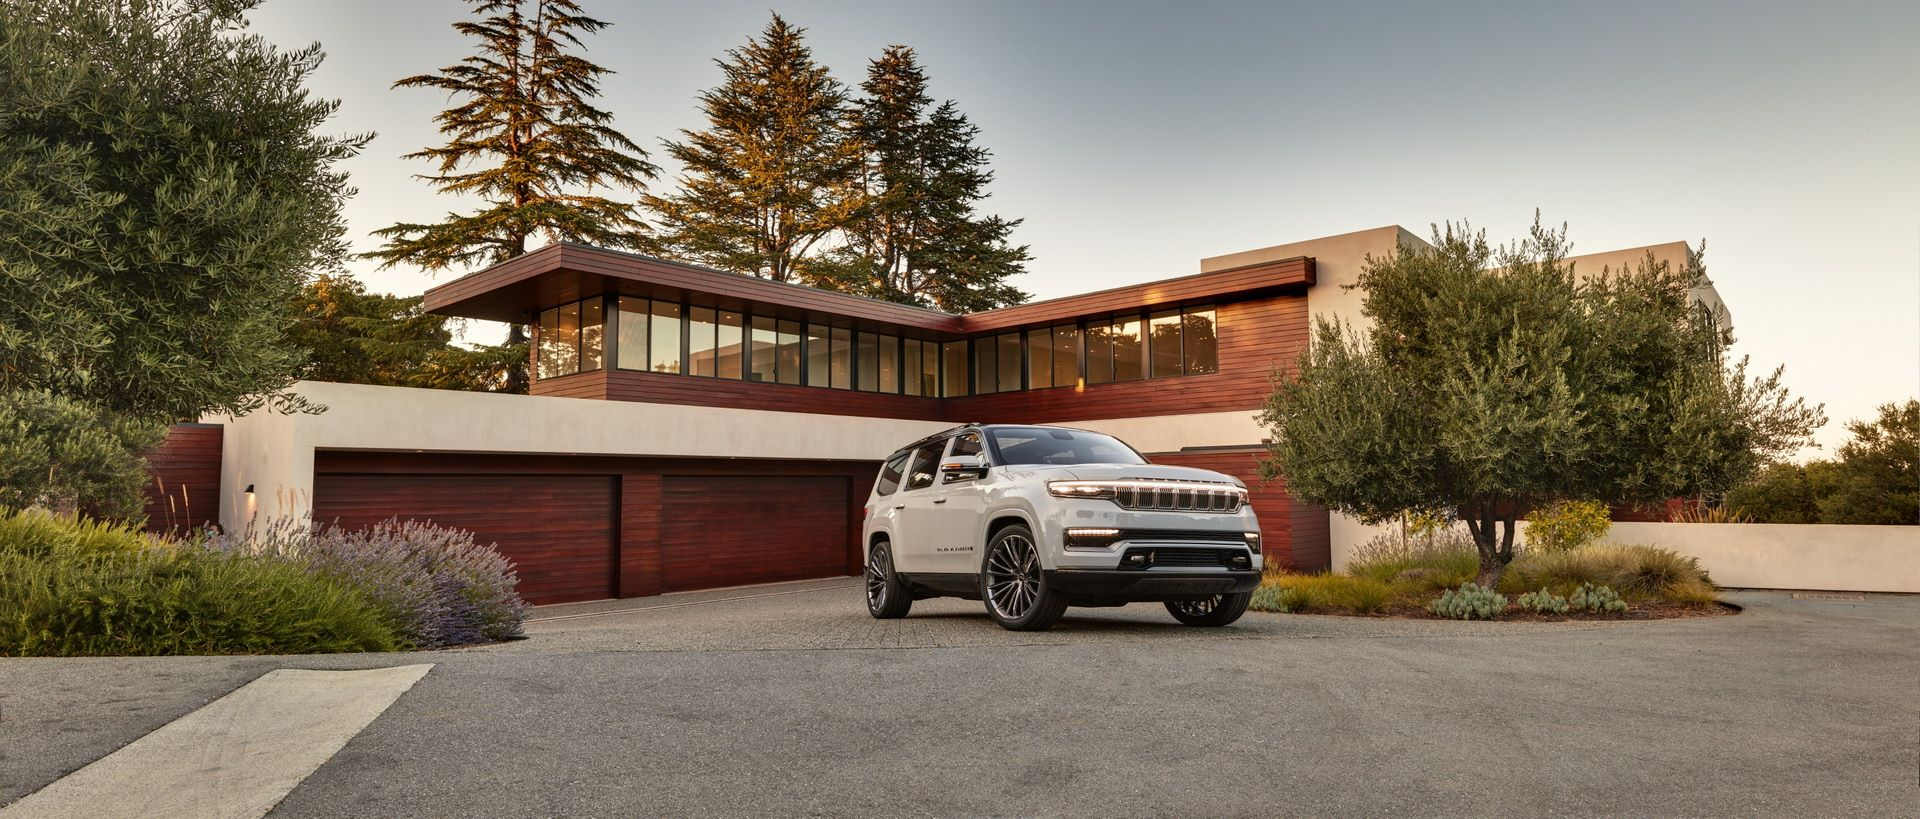 Jeep-Grand-Wagoneer-Concept-18